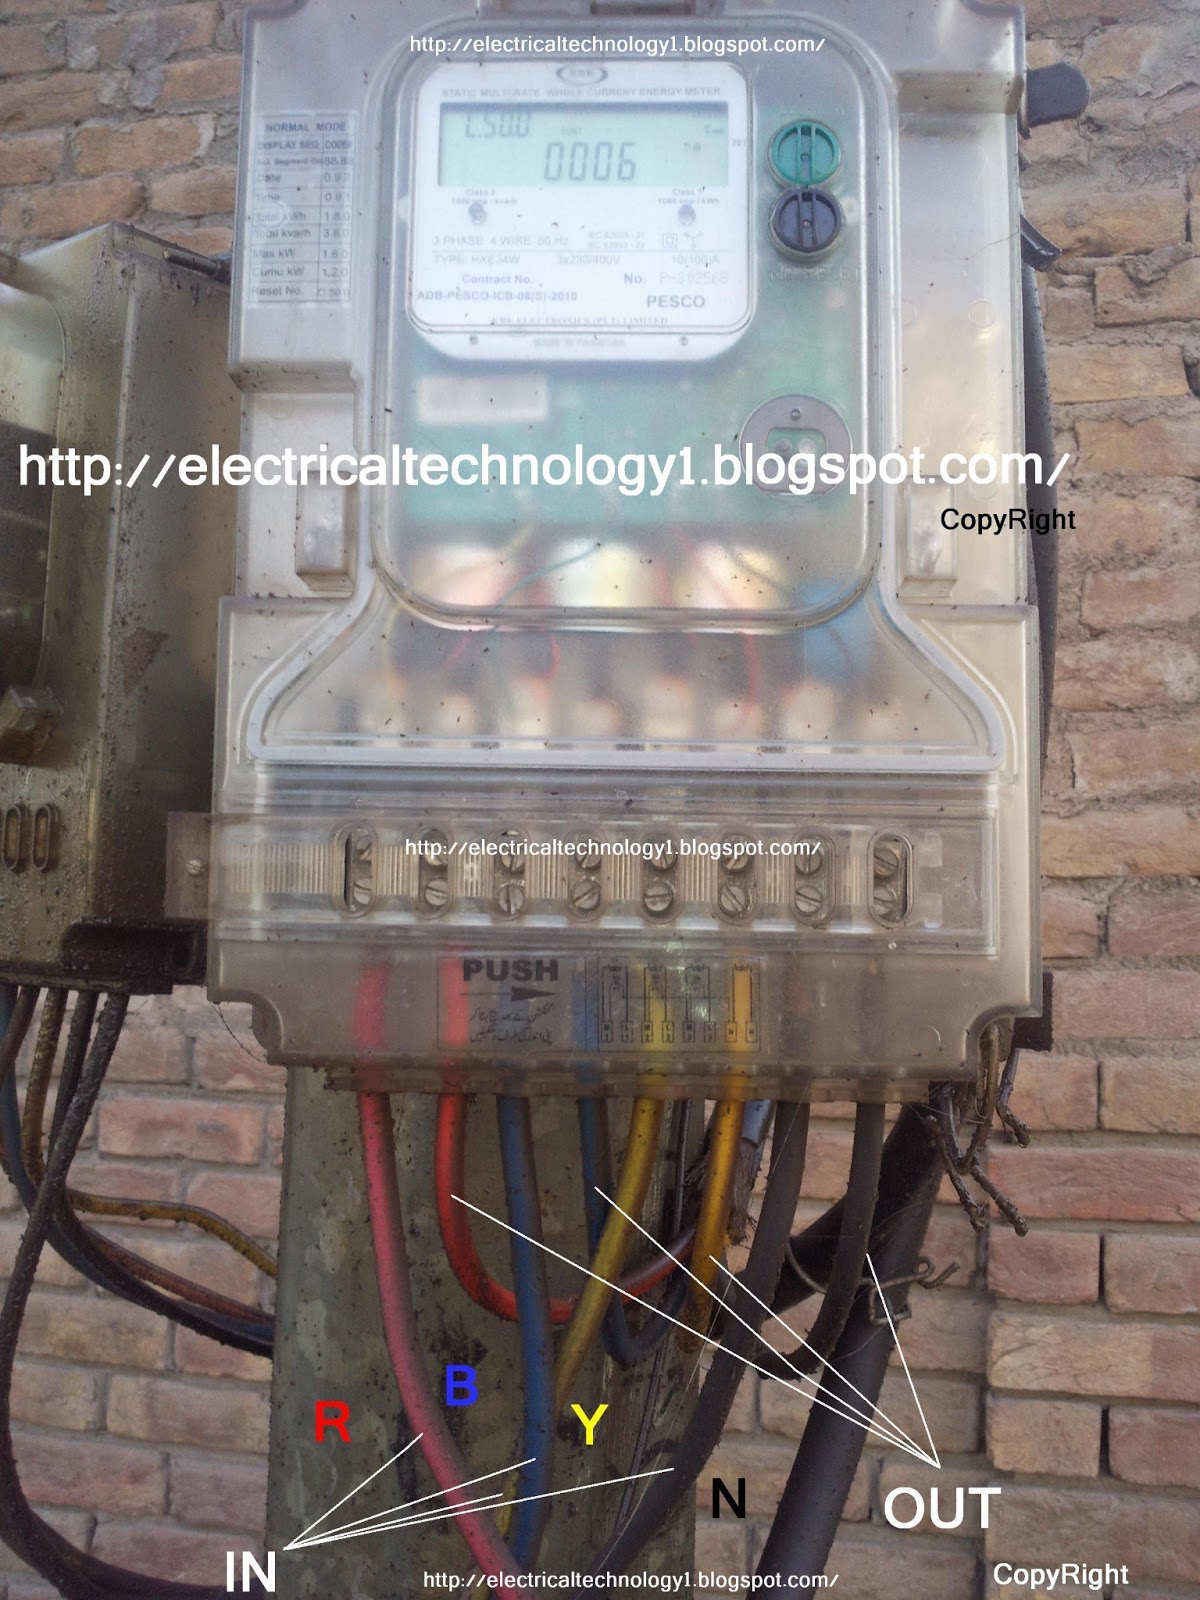 3 Phase Electric Meter Wiring Diagram 2003 Jetta Water Pump How To Wire Kwh Electrical Technology